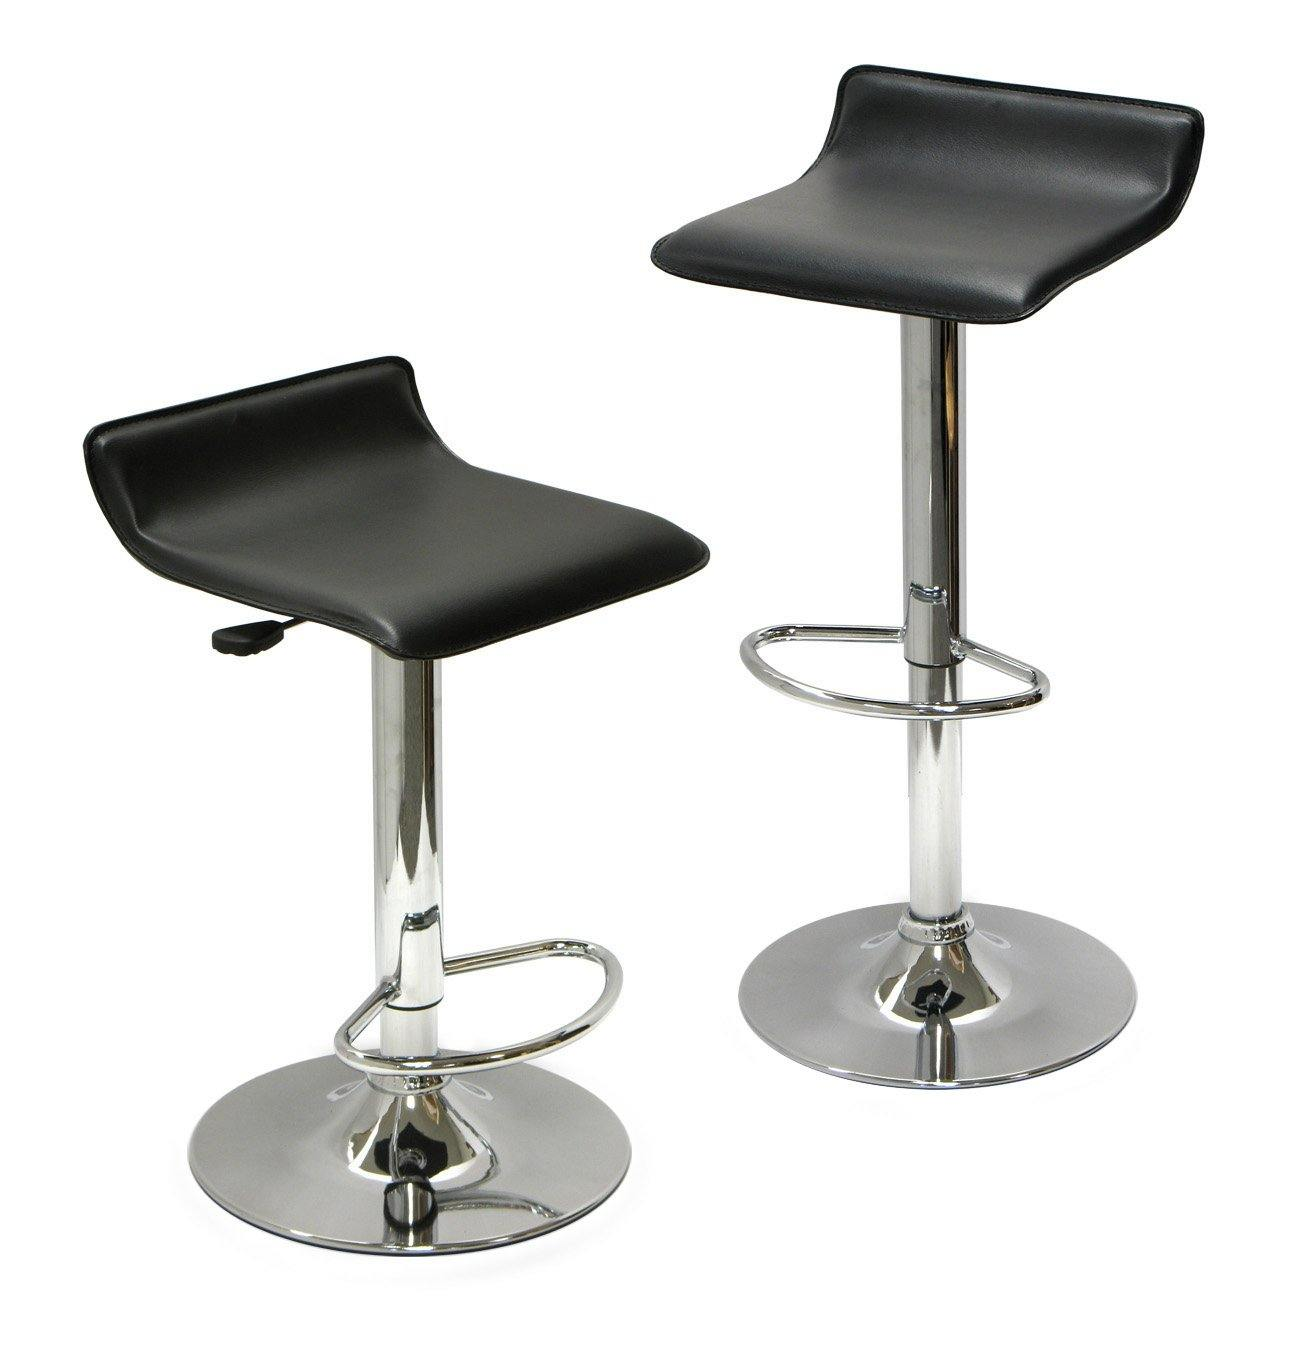 Spectrum Adjustable Swivel Stools, 2-Pc Set, Black & Chrome - My USA Furniture